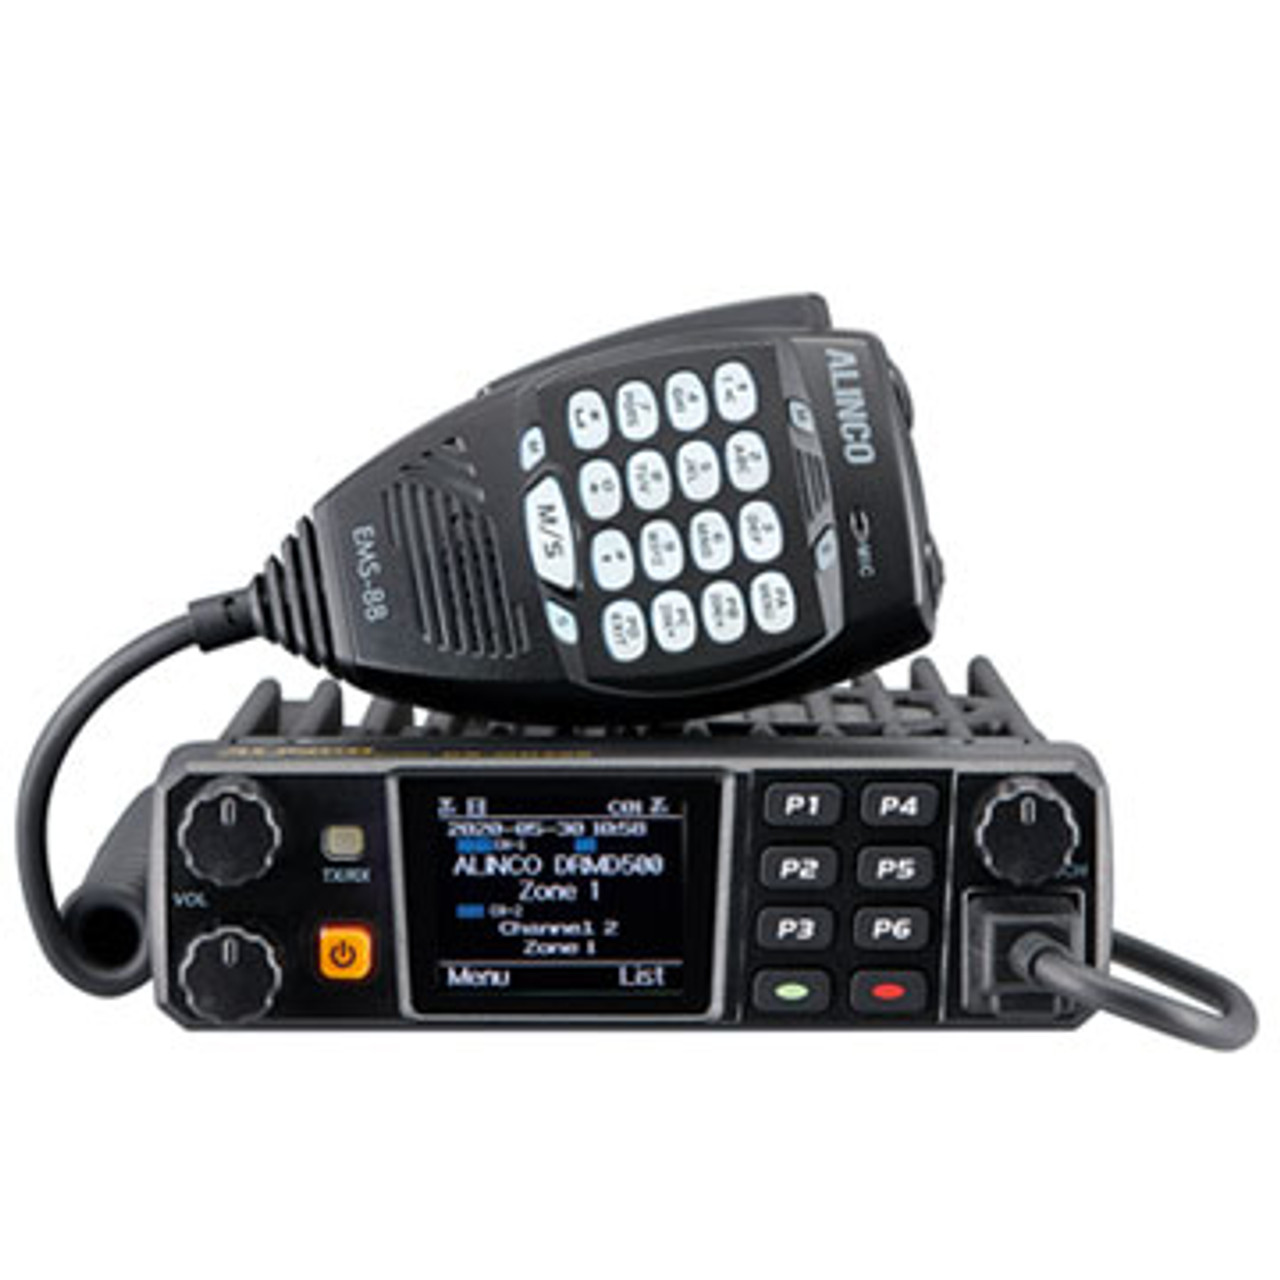 Alinco DR-MD500T - Dual Band Mobile DMR